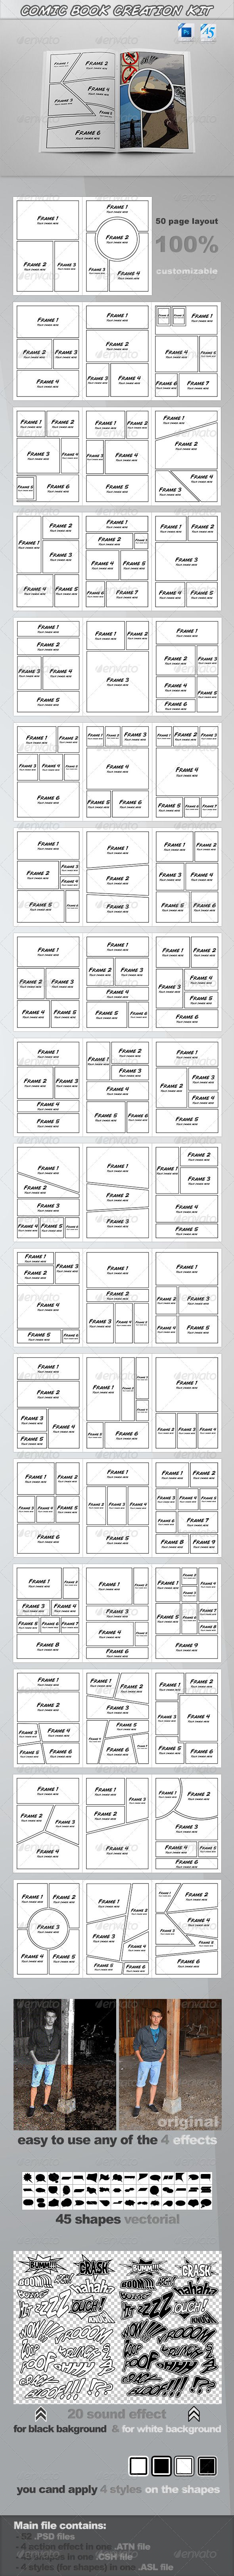 ComicBook Creation Kit - Artistic Photo Templates